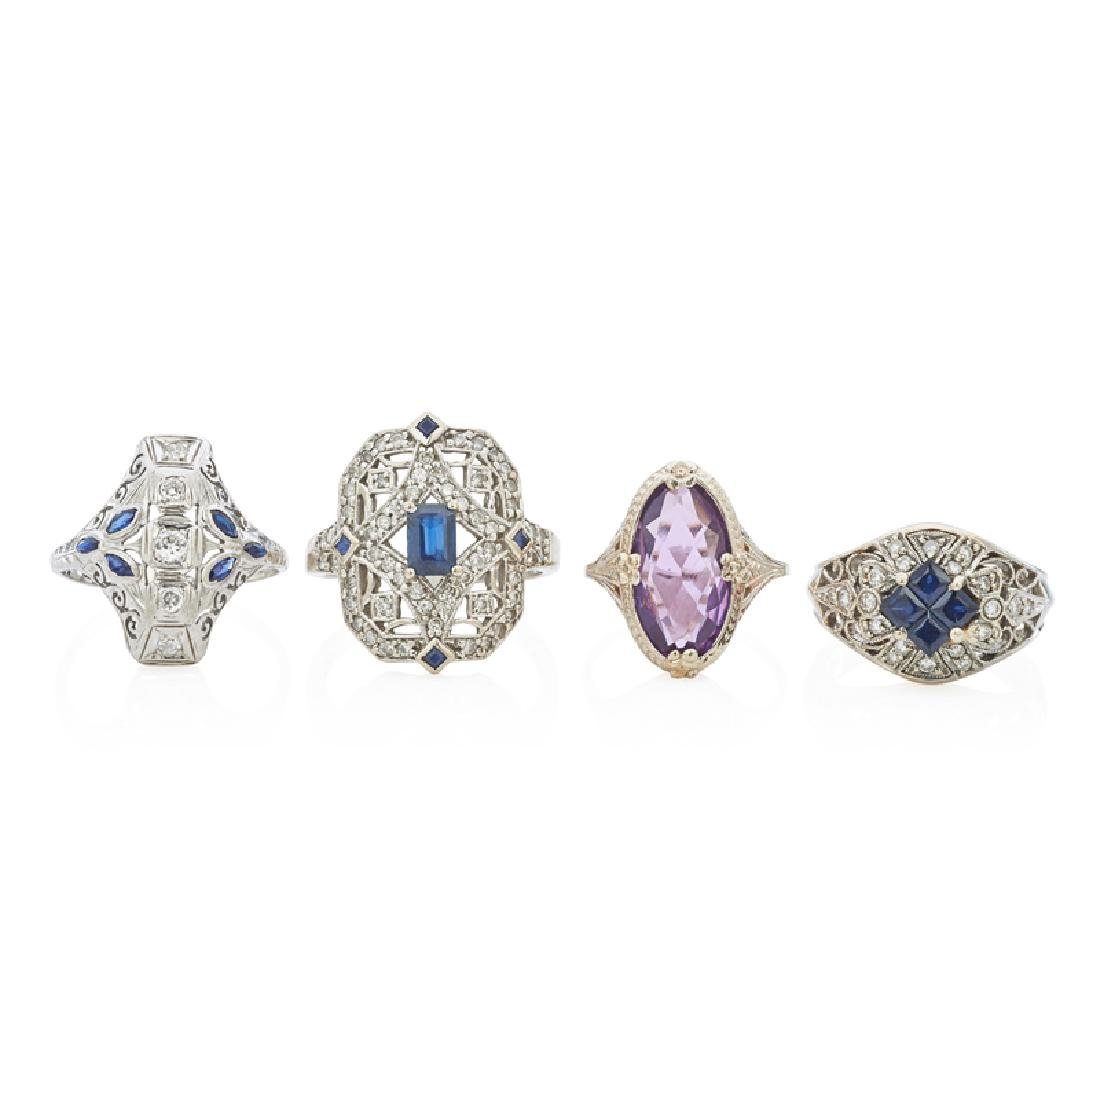 SAPPHIRE OR AMETHYST WHITE GOLD RINGS, INCL. DIAMONDS